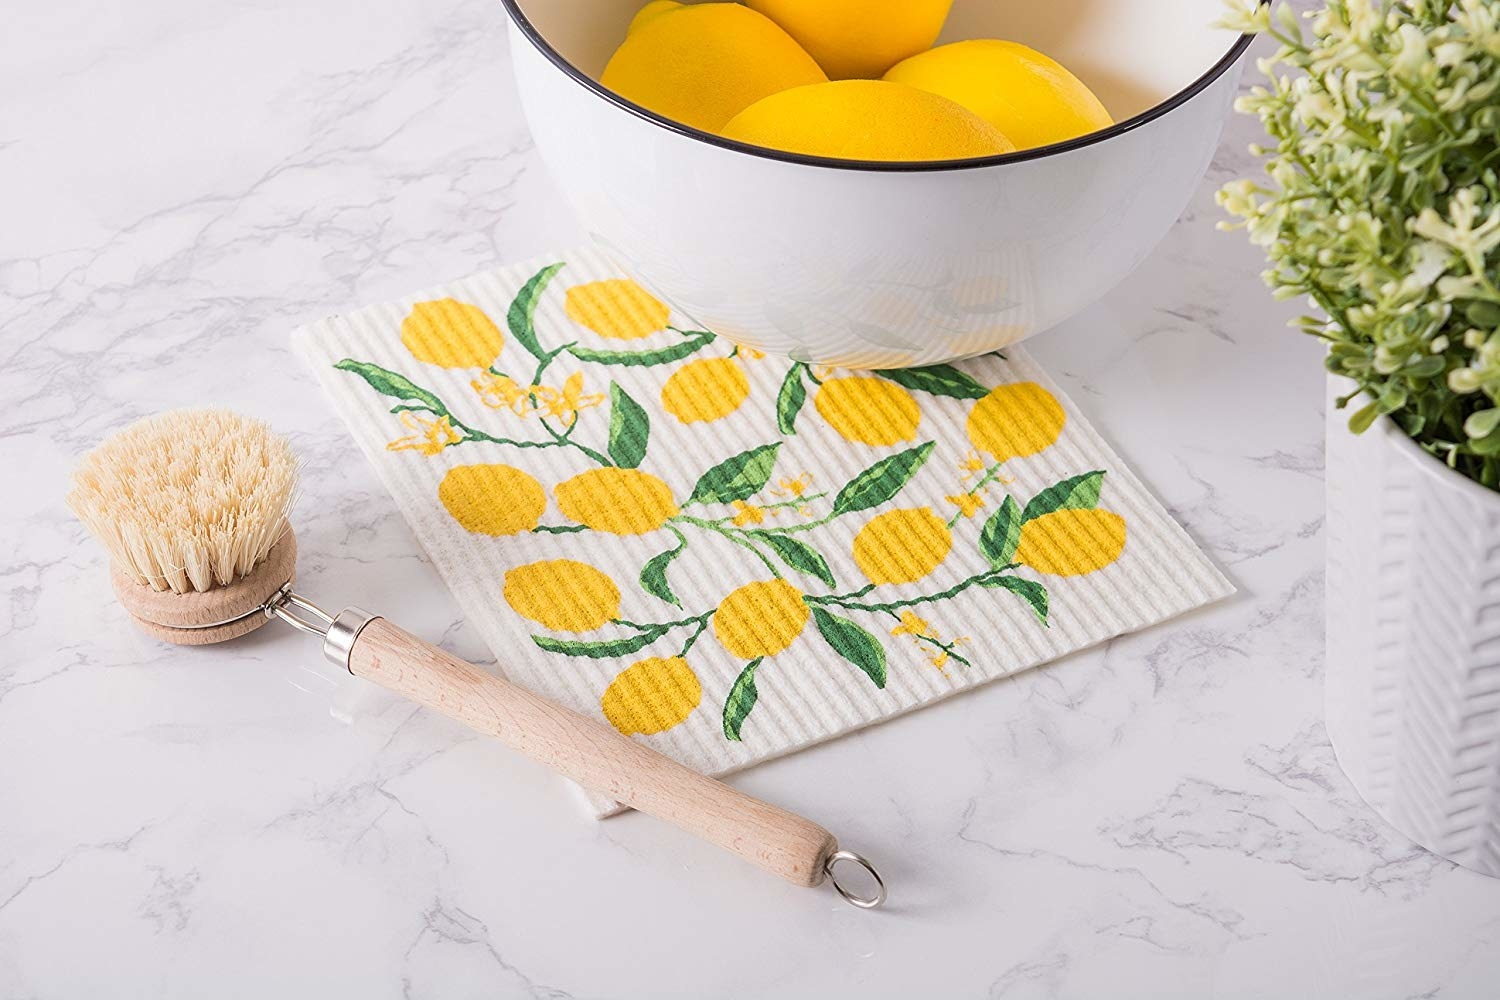 Lemon-patterned white dish cloth resting next to dish scrubber and bowl of lemons